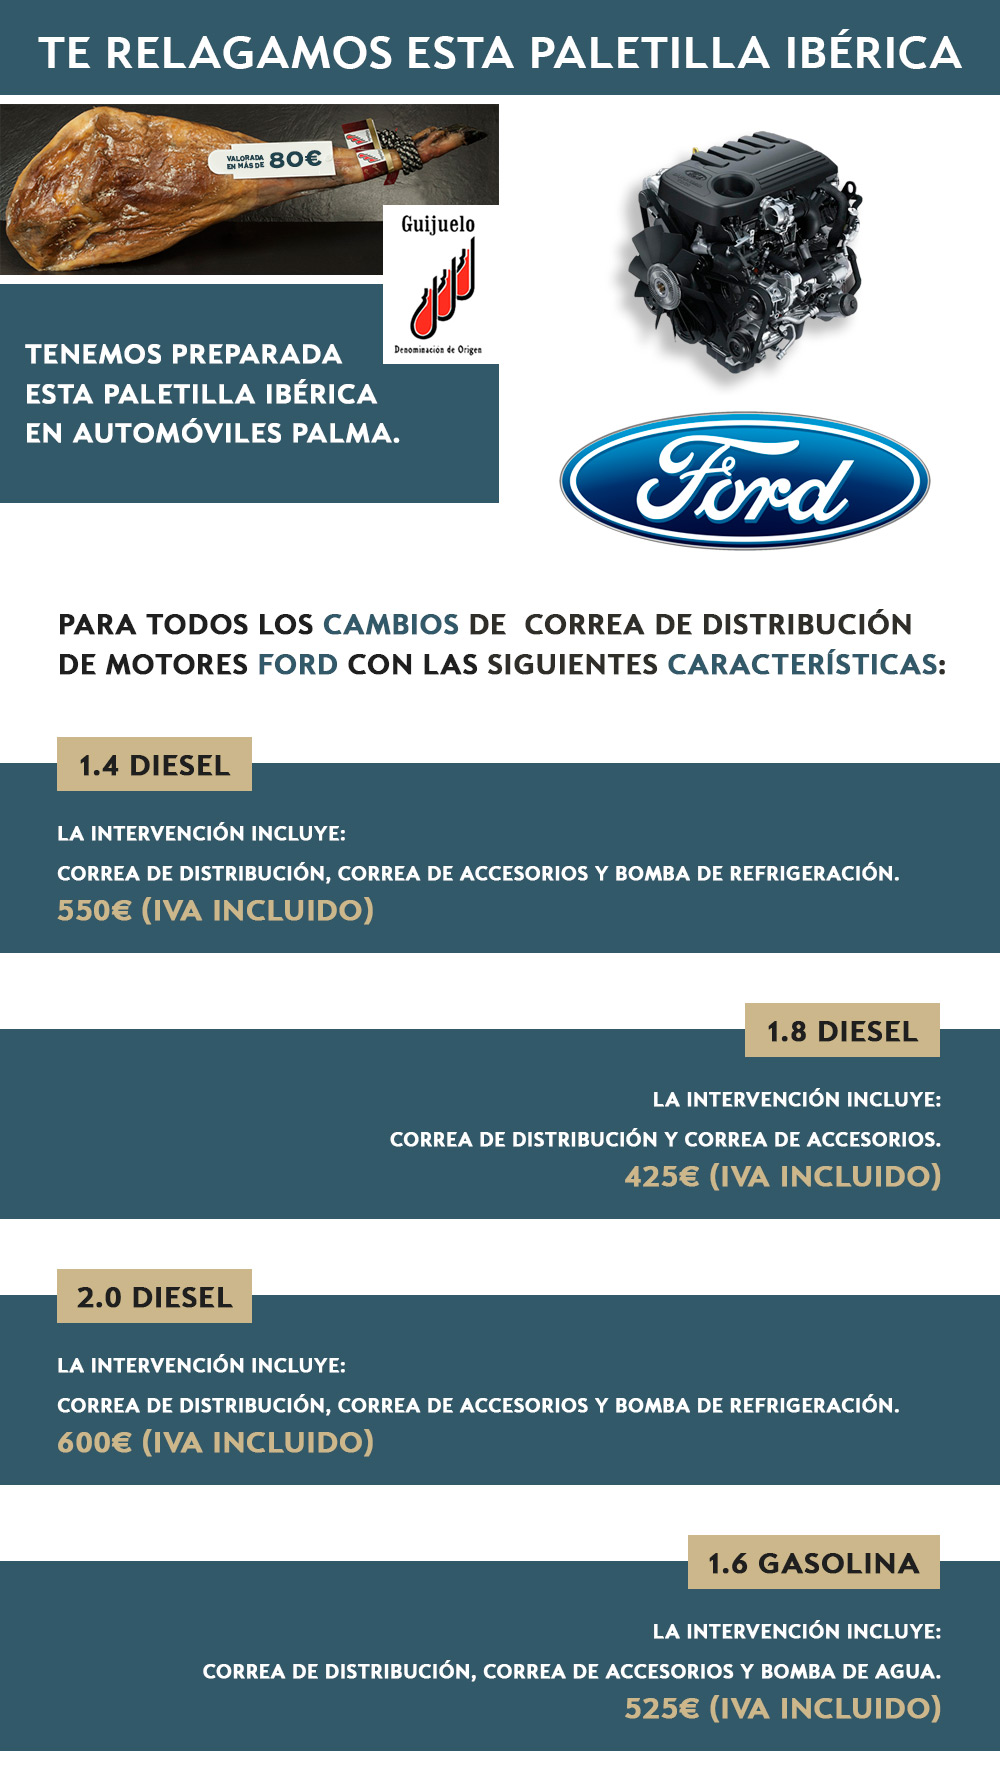 motores_ford_facebook